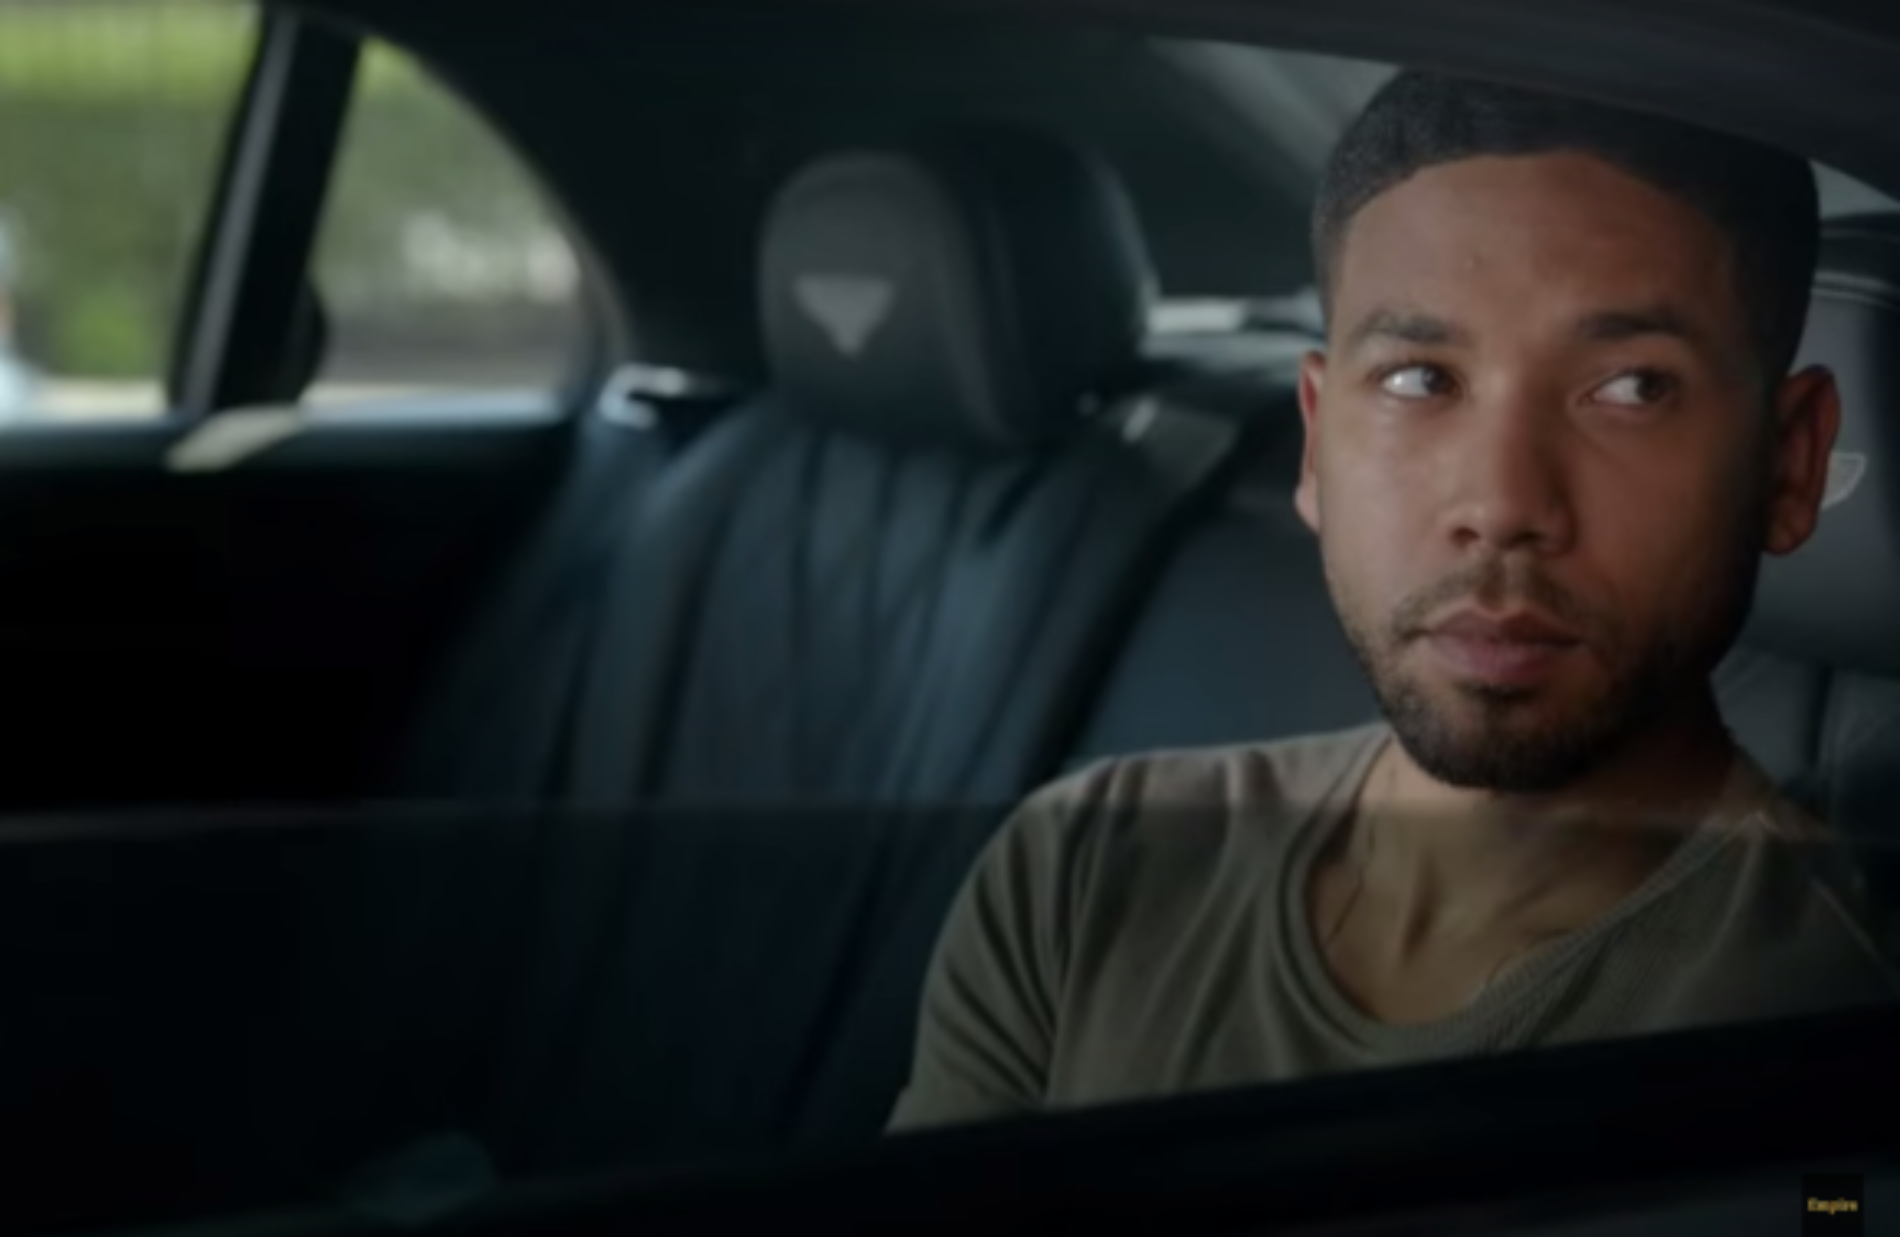 Jussie Smollett Asks Fans Not To Give Up On 'Empire'